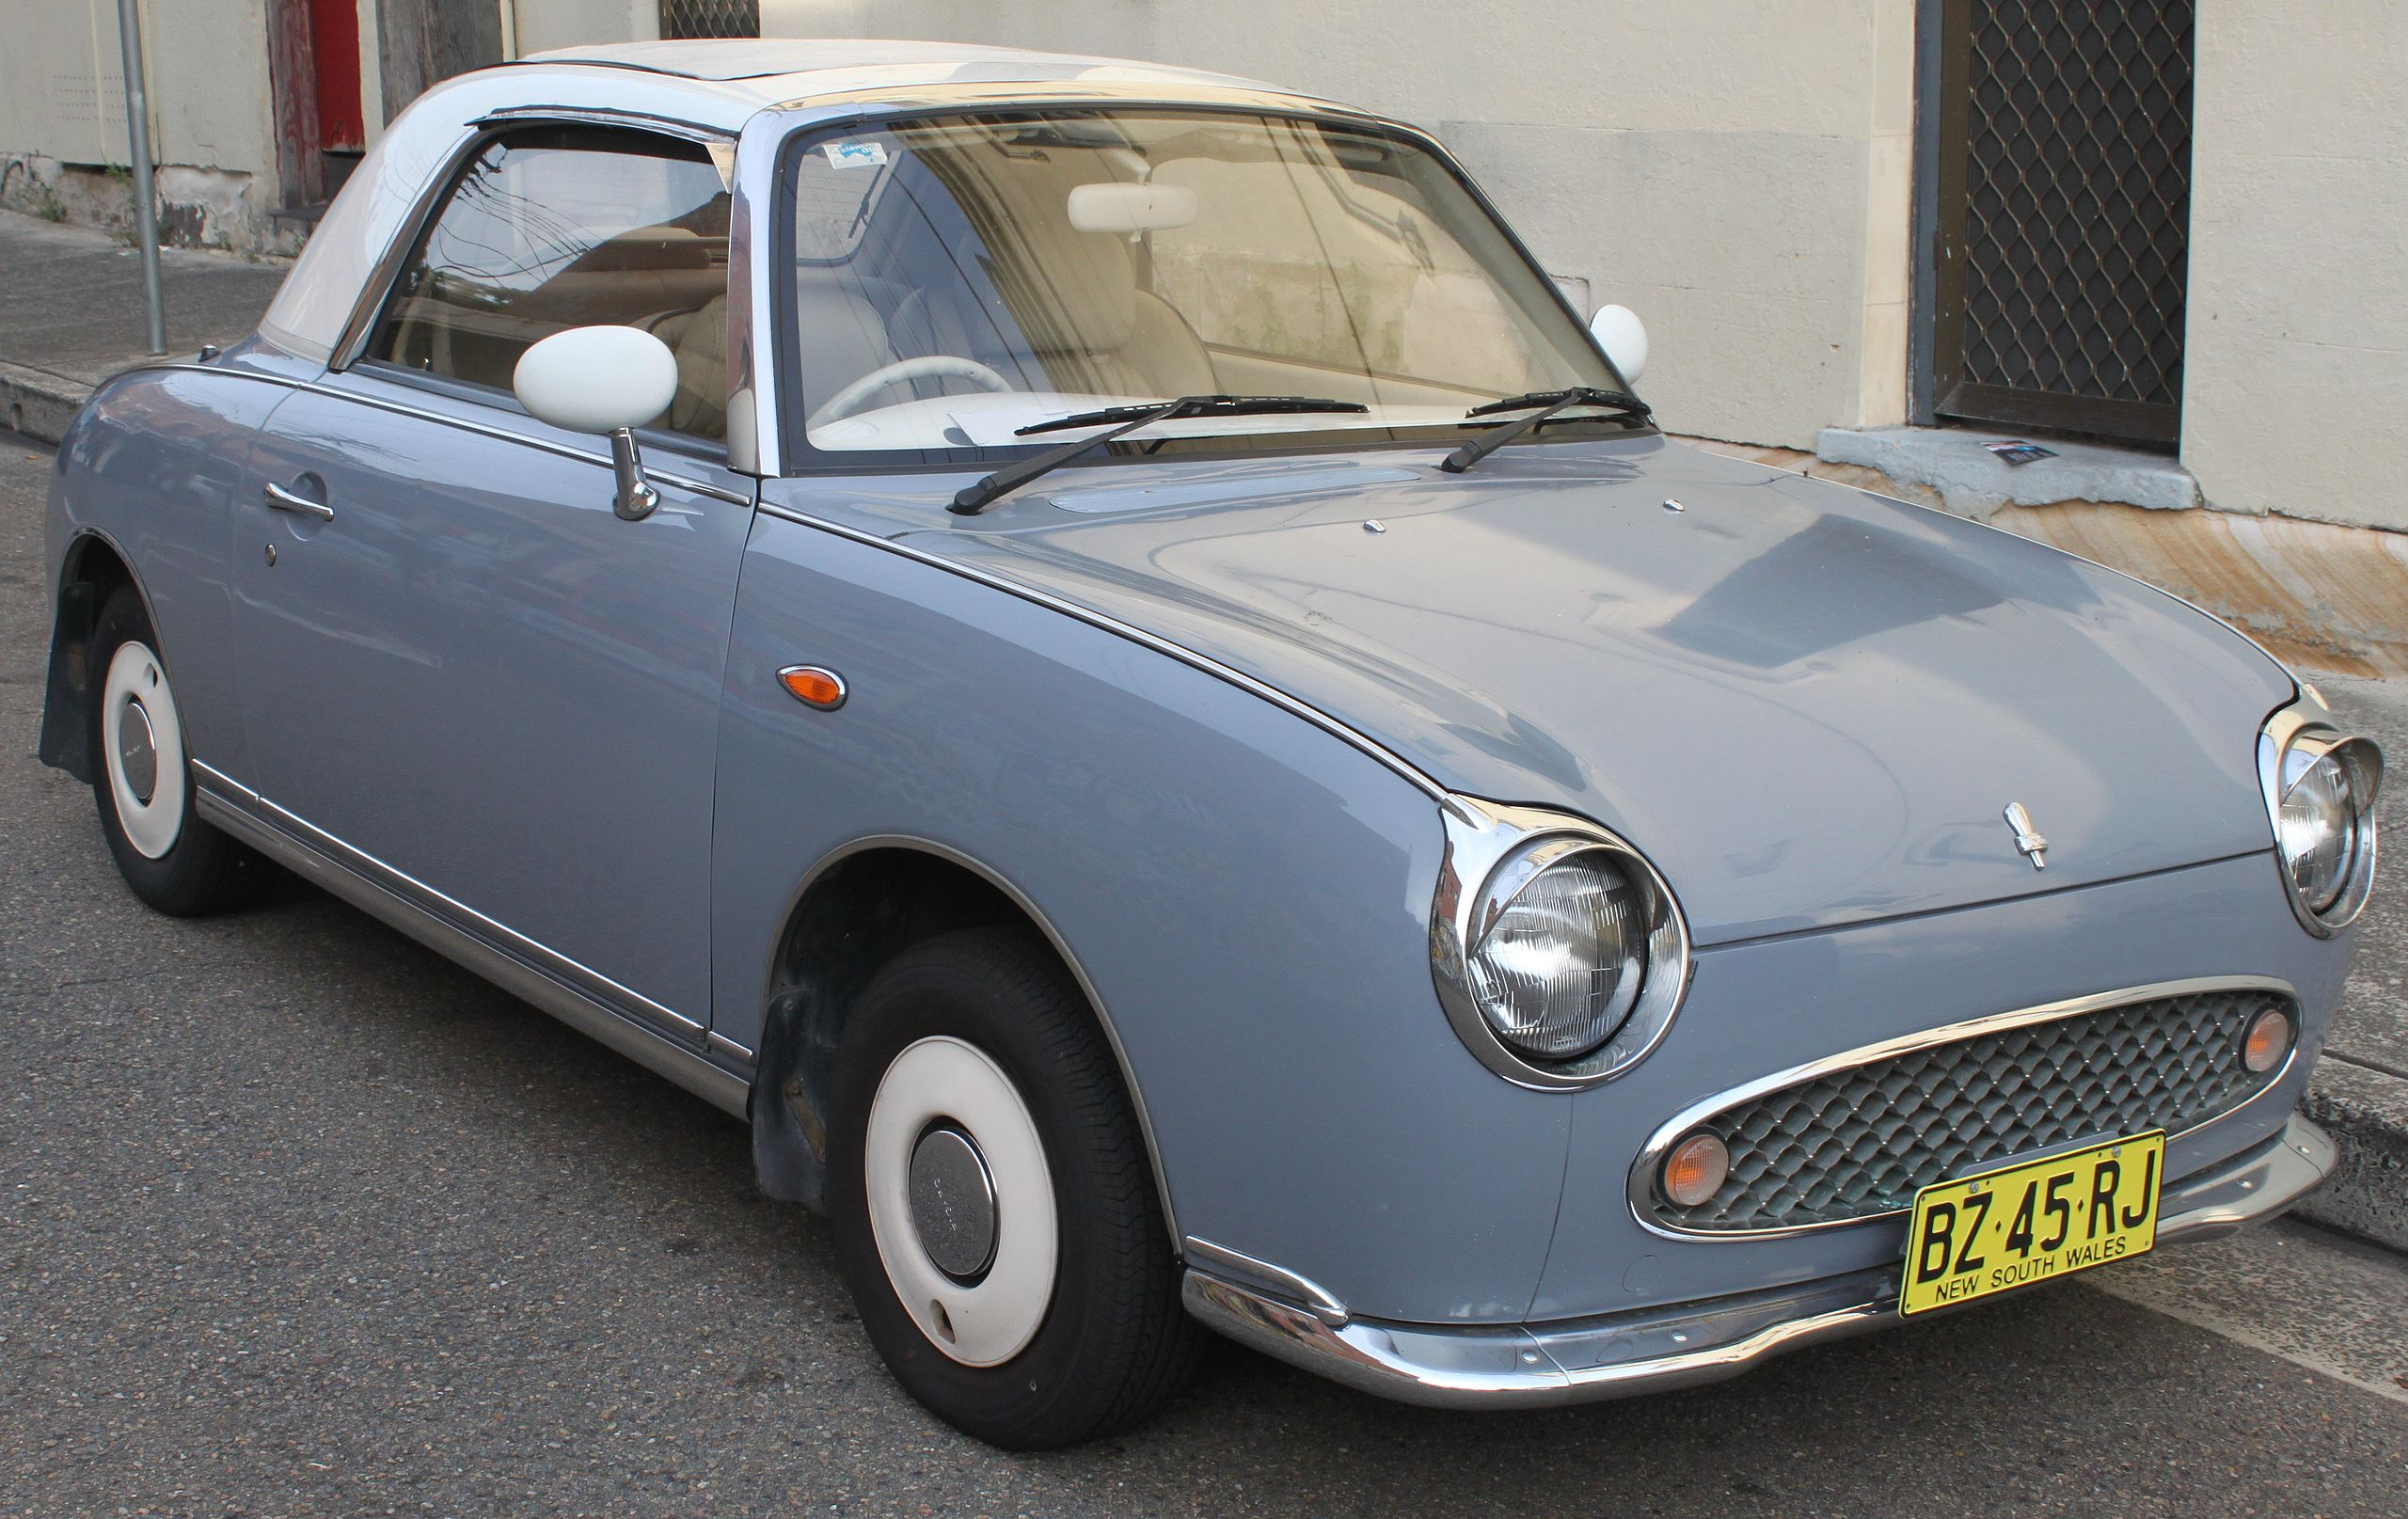 Coolest Ugliest Vehicles General Facepunch Forum Nissan Figaro Fuse Box Early 90s Had Some Really Nice Looking Kei Cars Theres Something About This Design Language That I Like